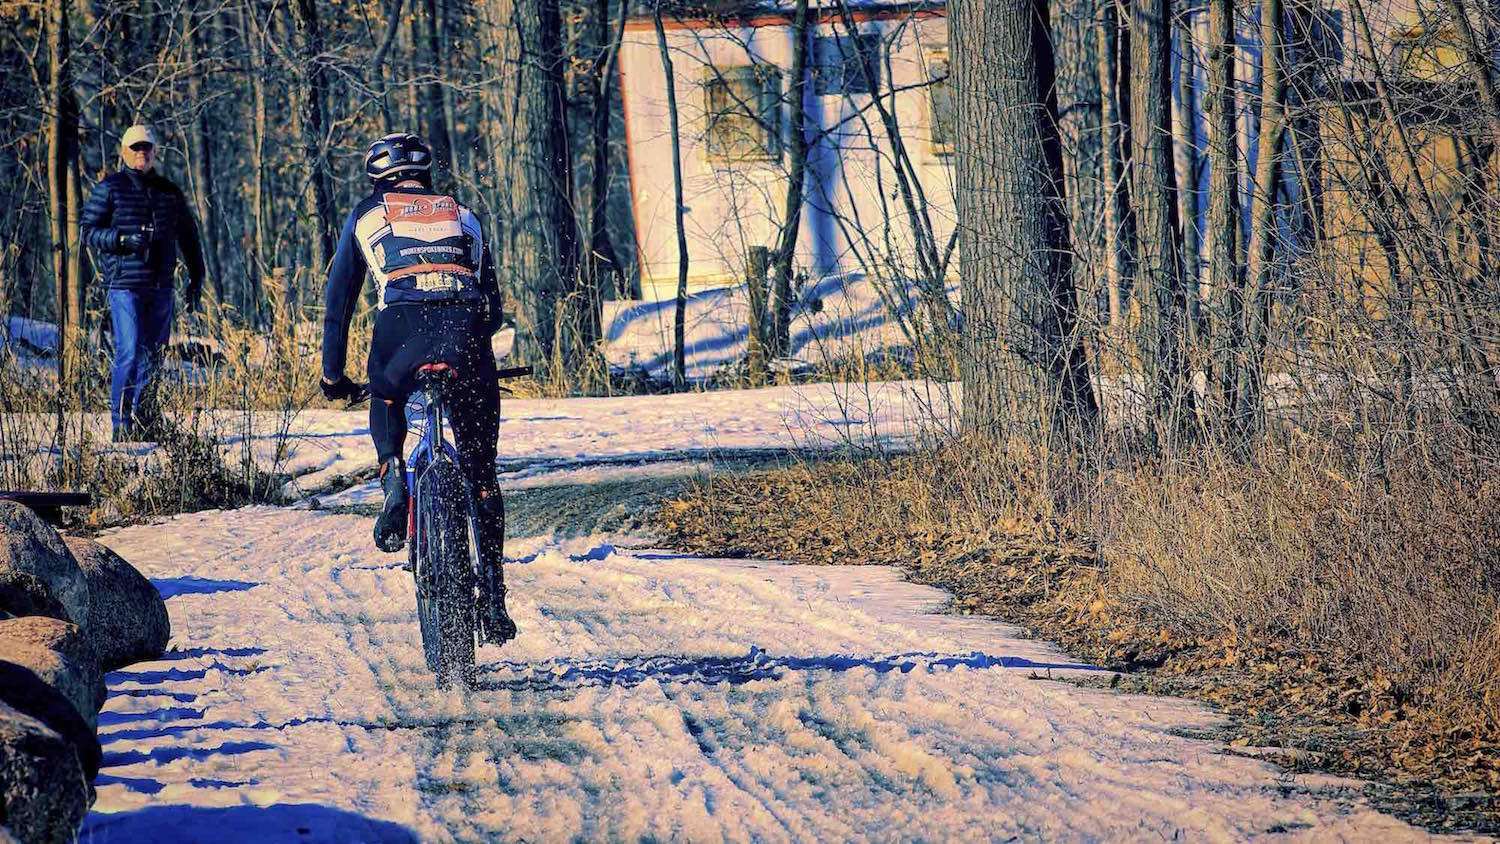 A fast racer leaves a rooster tail of snow in the wake of his fat bike.